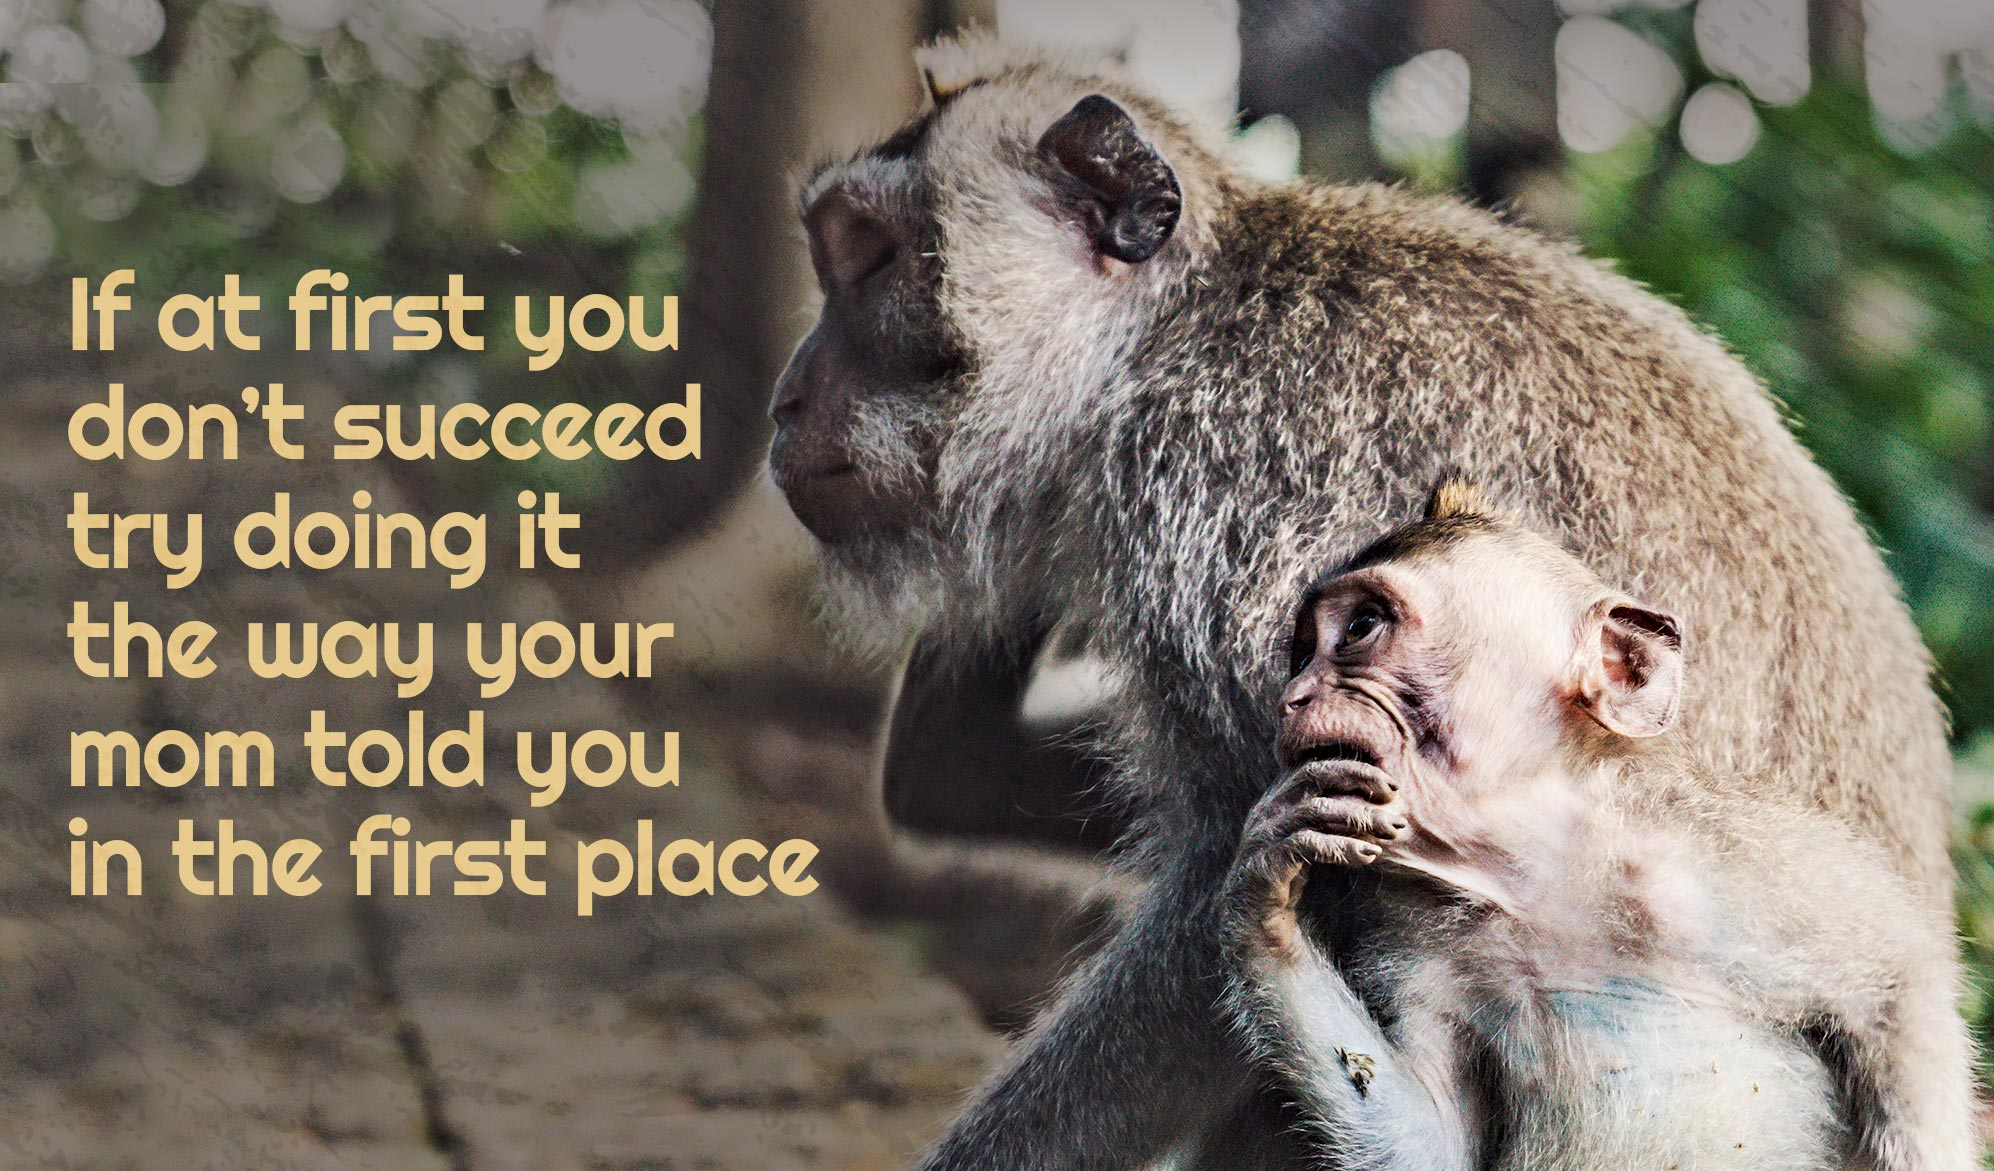 daily inspirational quote image: a mom and a baby monkey on the forest